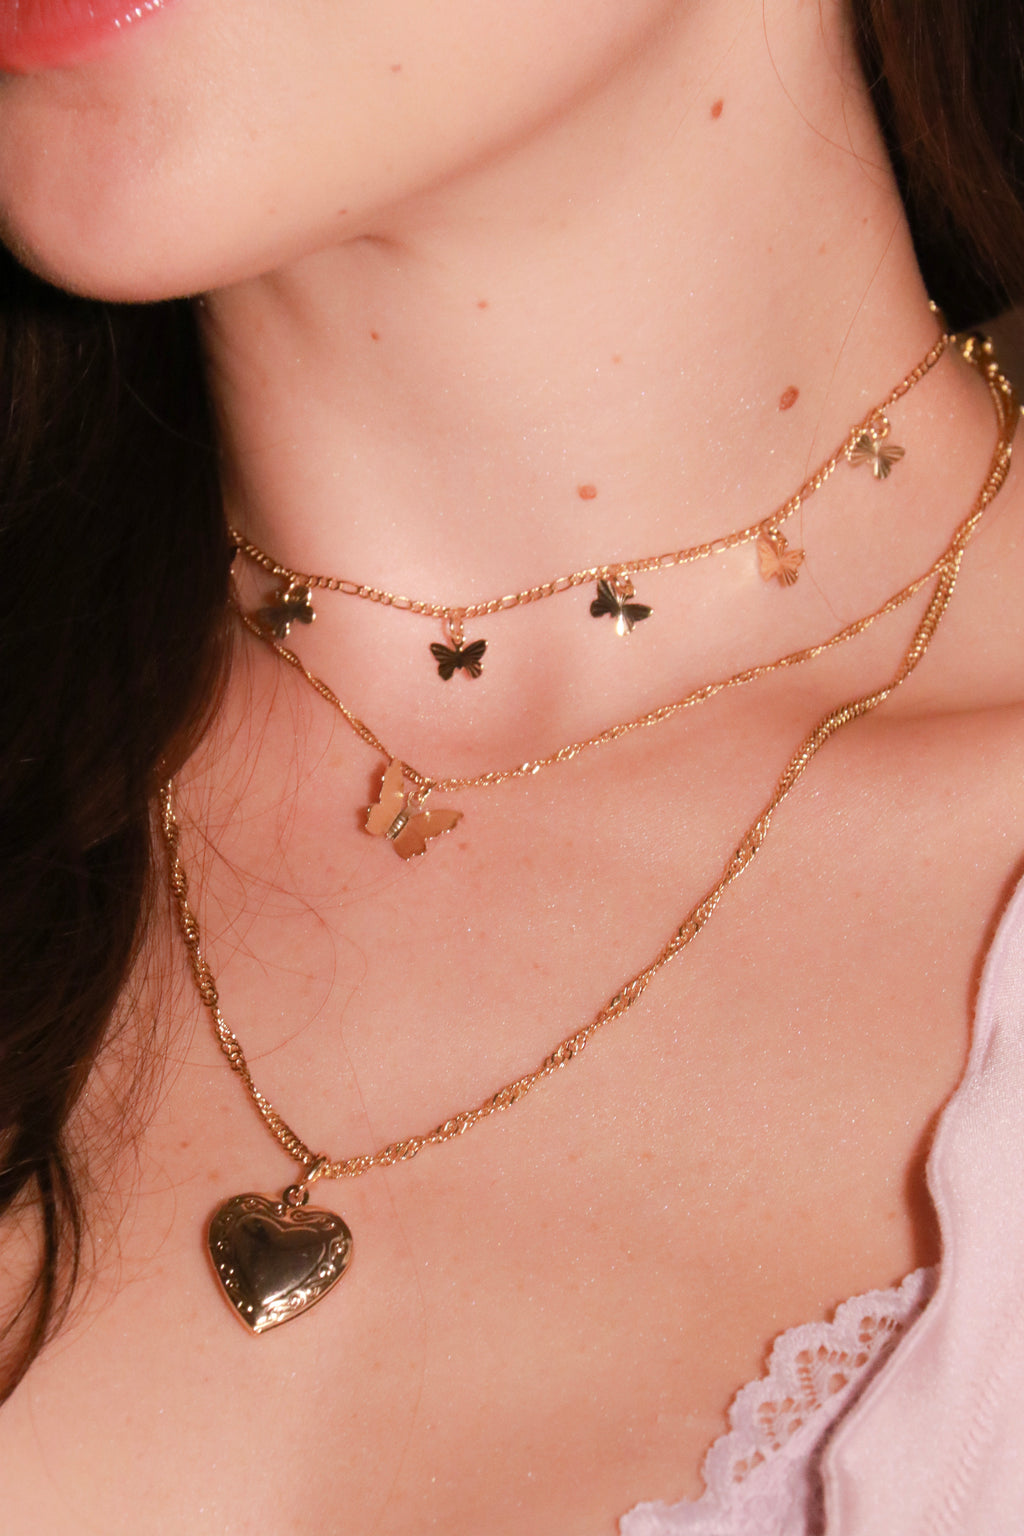 Butterfly Kisses Necklace - Gold Filled